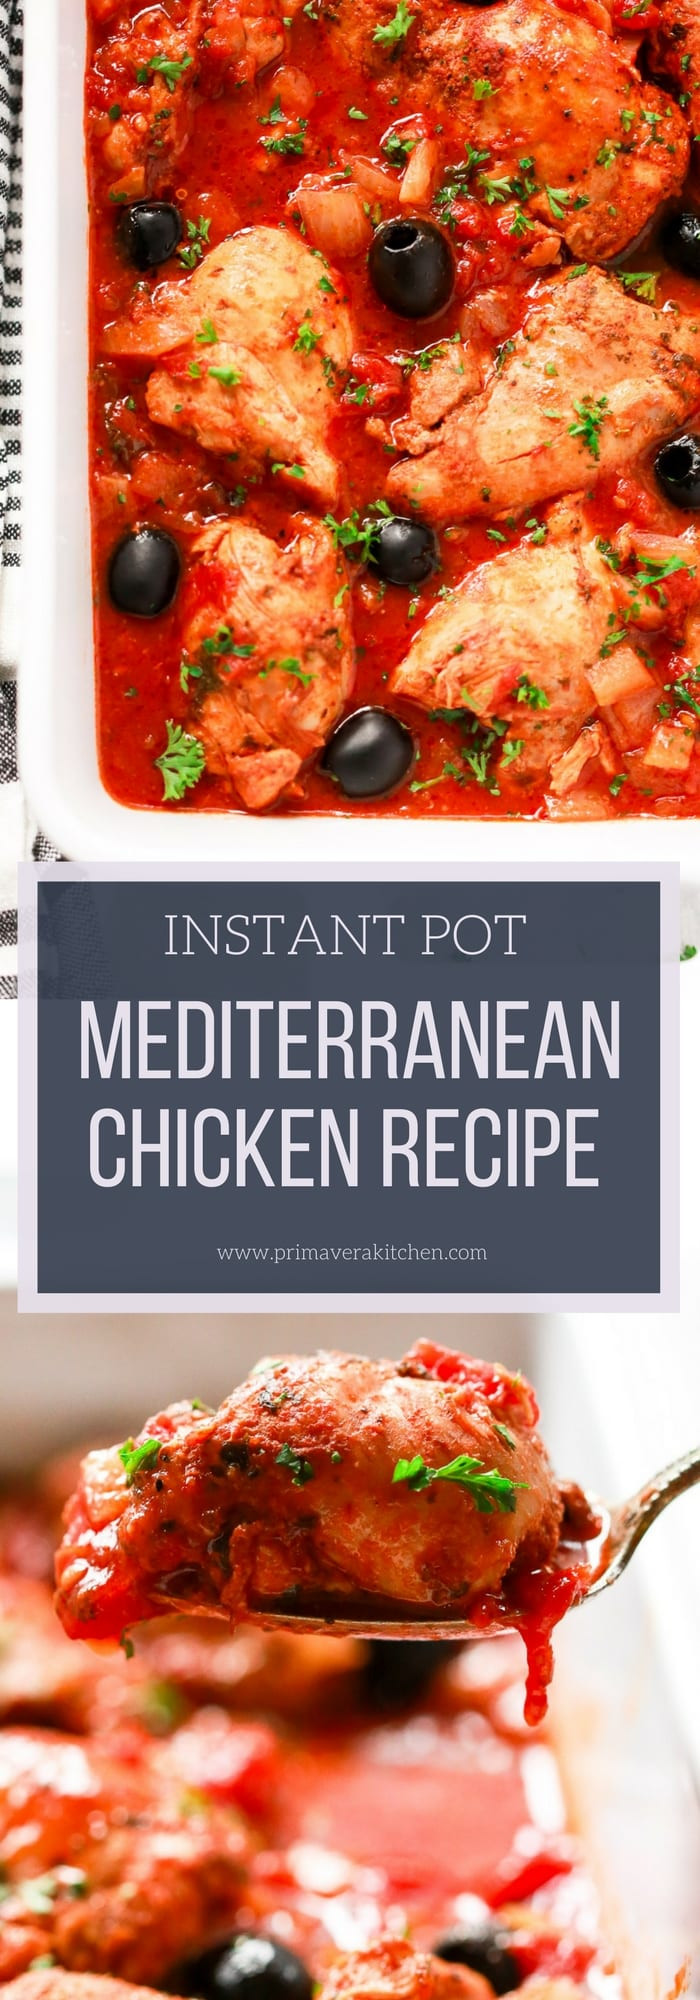 Instant Pot Low Calorie Recipes  Instant Pot Mediterranean Chicken Recipe Primavera Kitchen